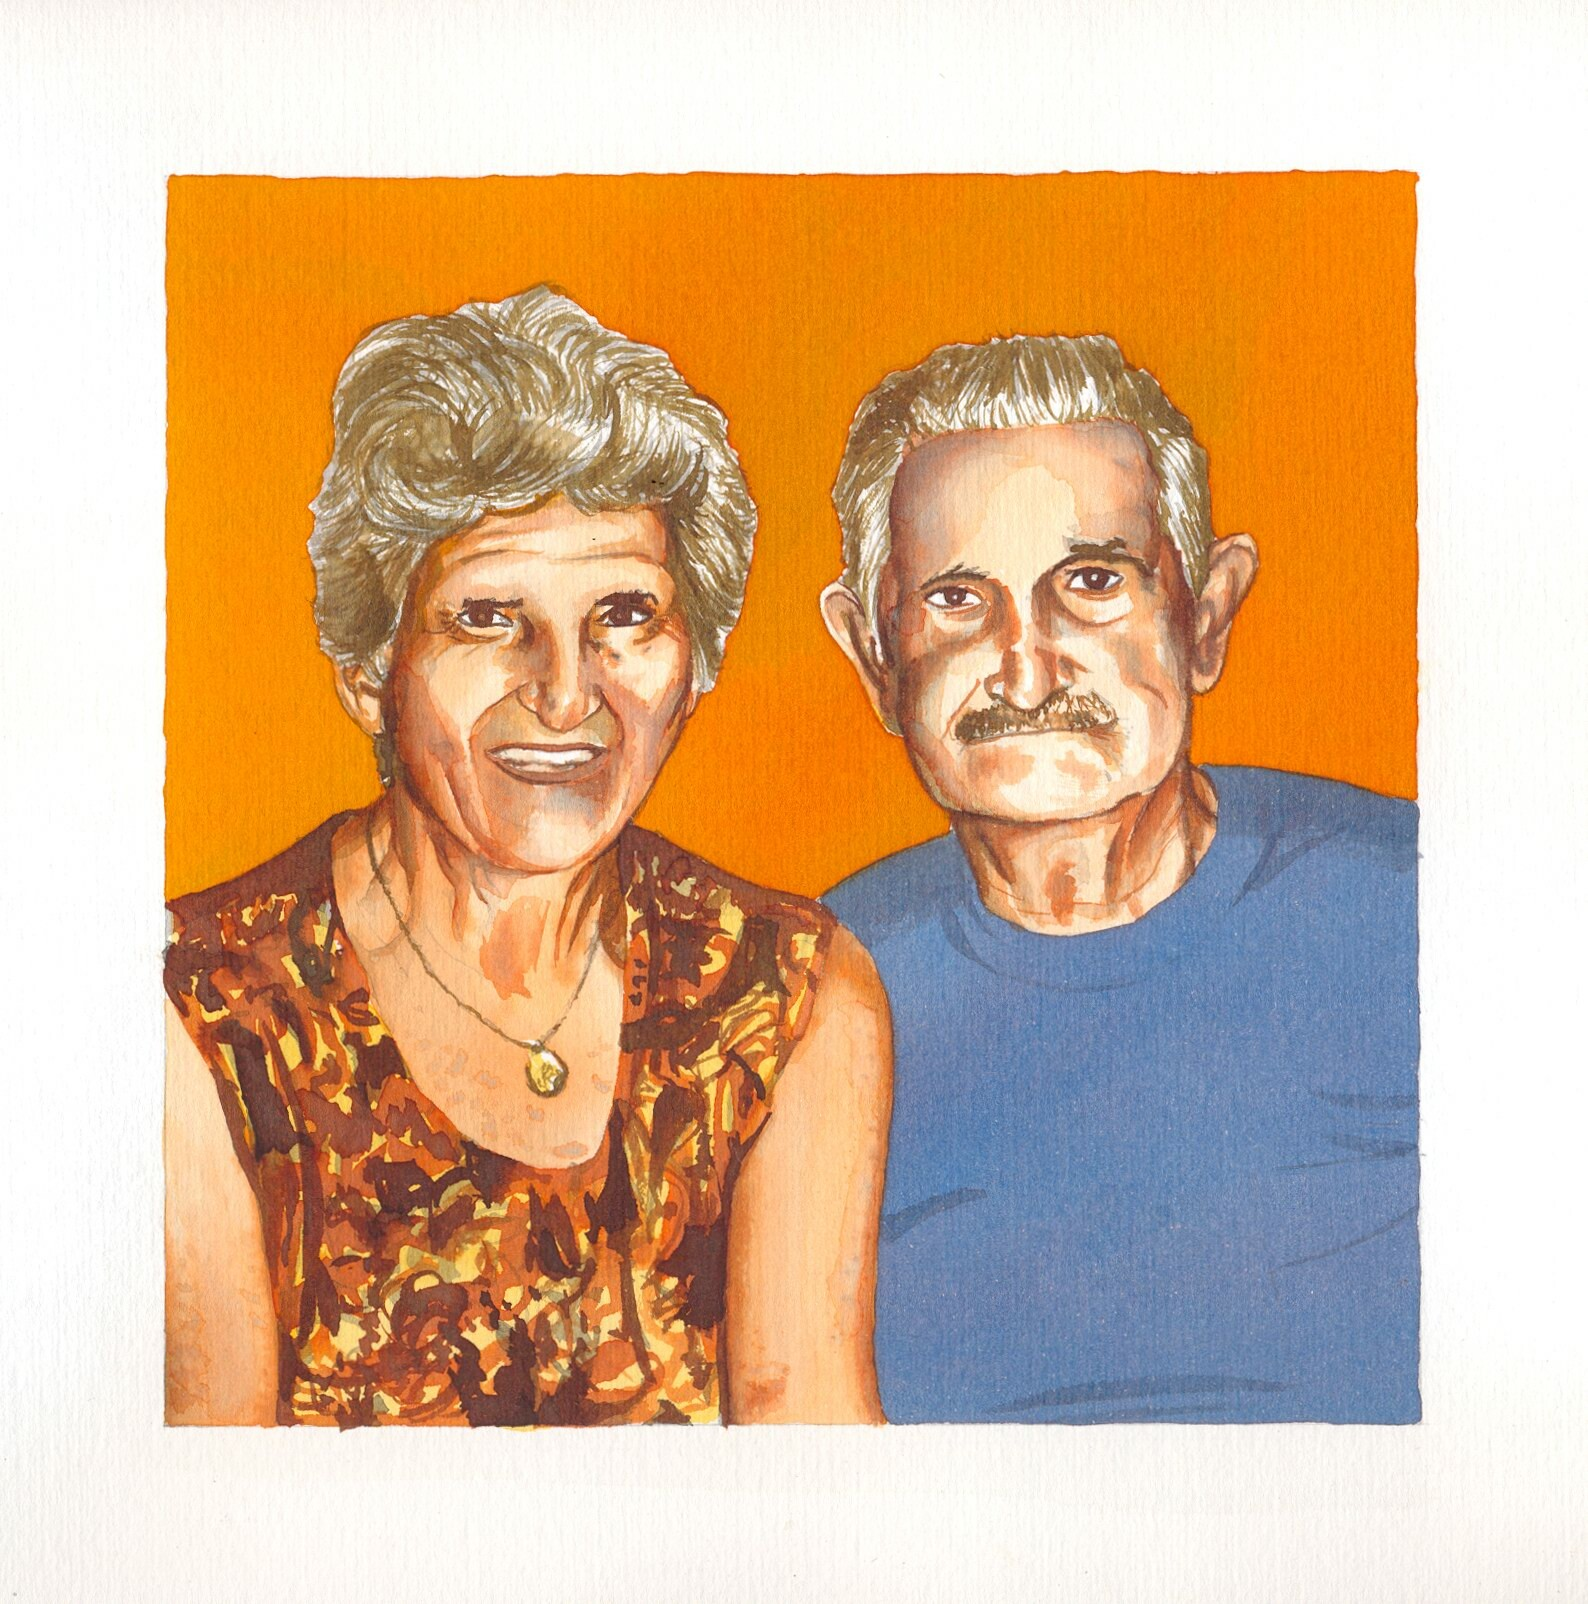 My late grandparents.